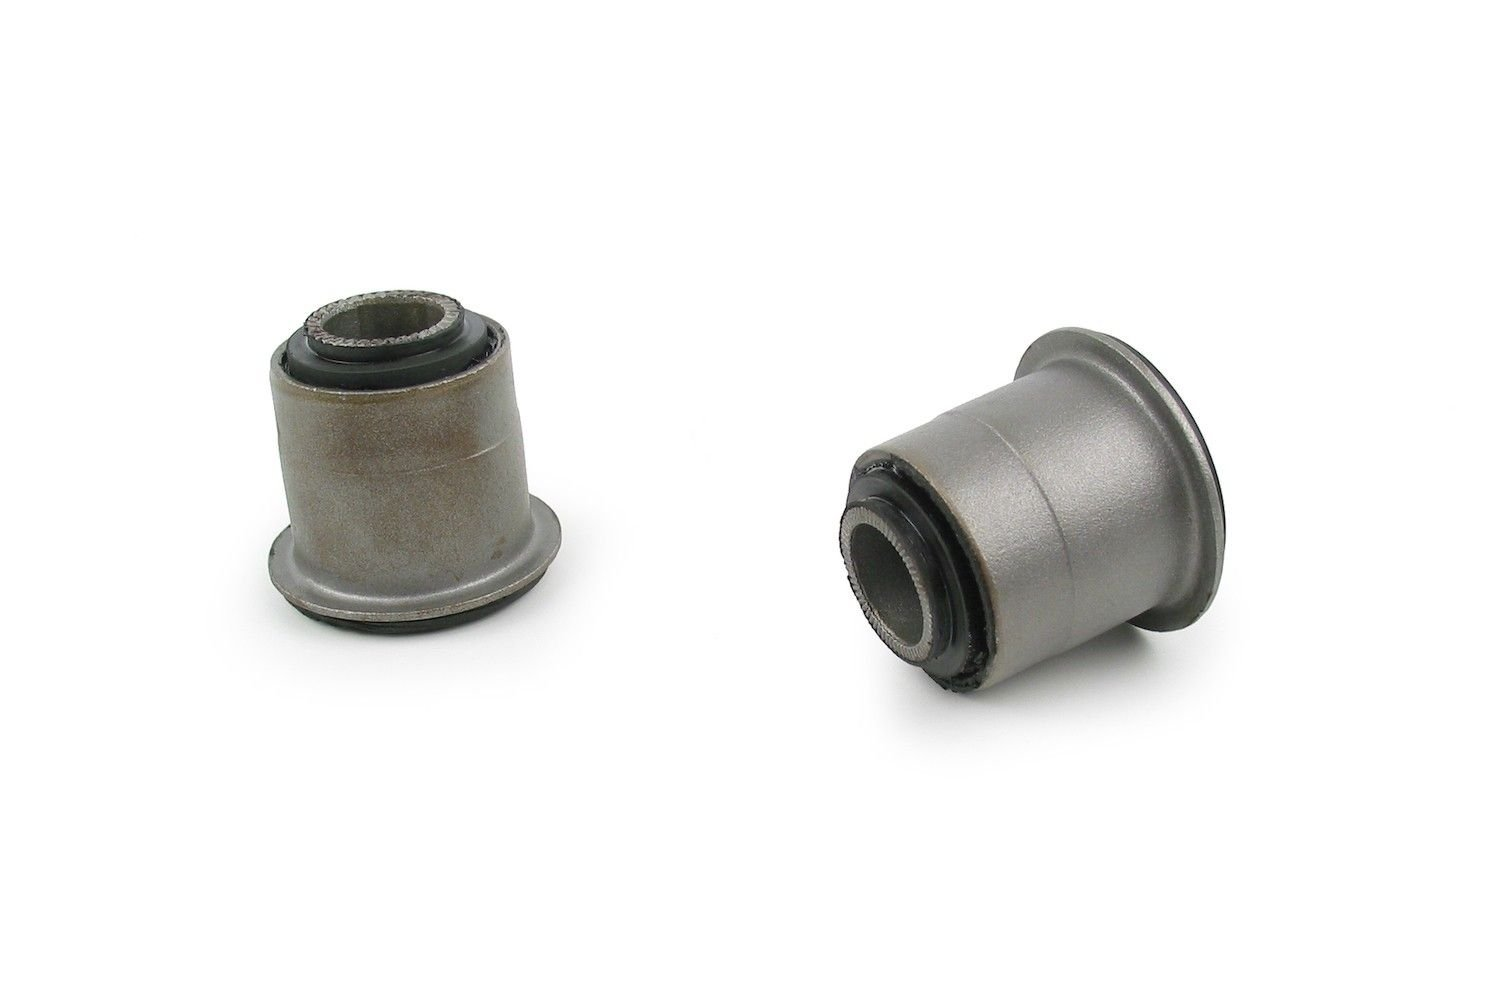 Isuzu Rodeo Suspension Control Arm Bushing Replacement Beck Arnley 1999 Parts 1996 Front Upper Mevotech Gk9468